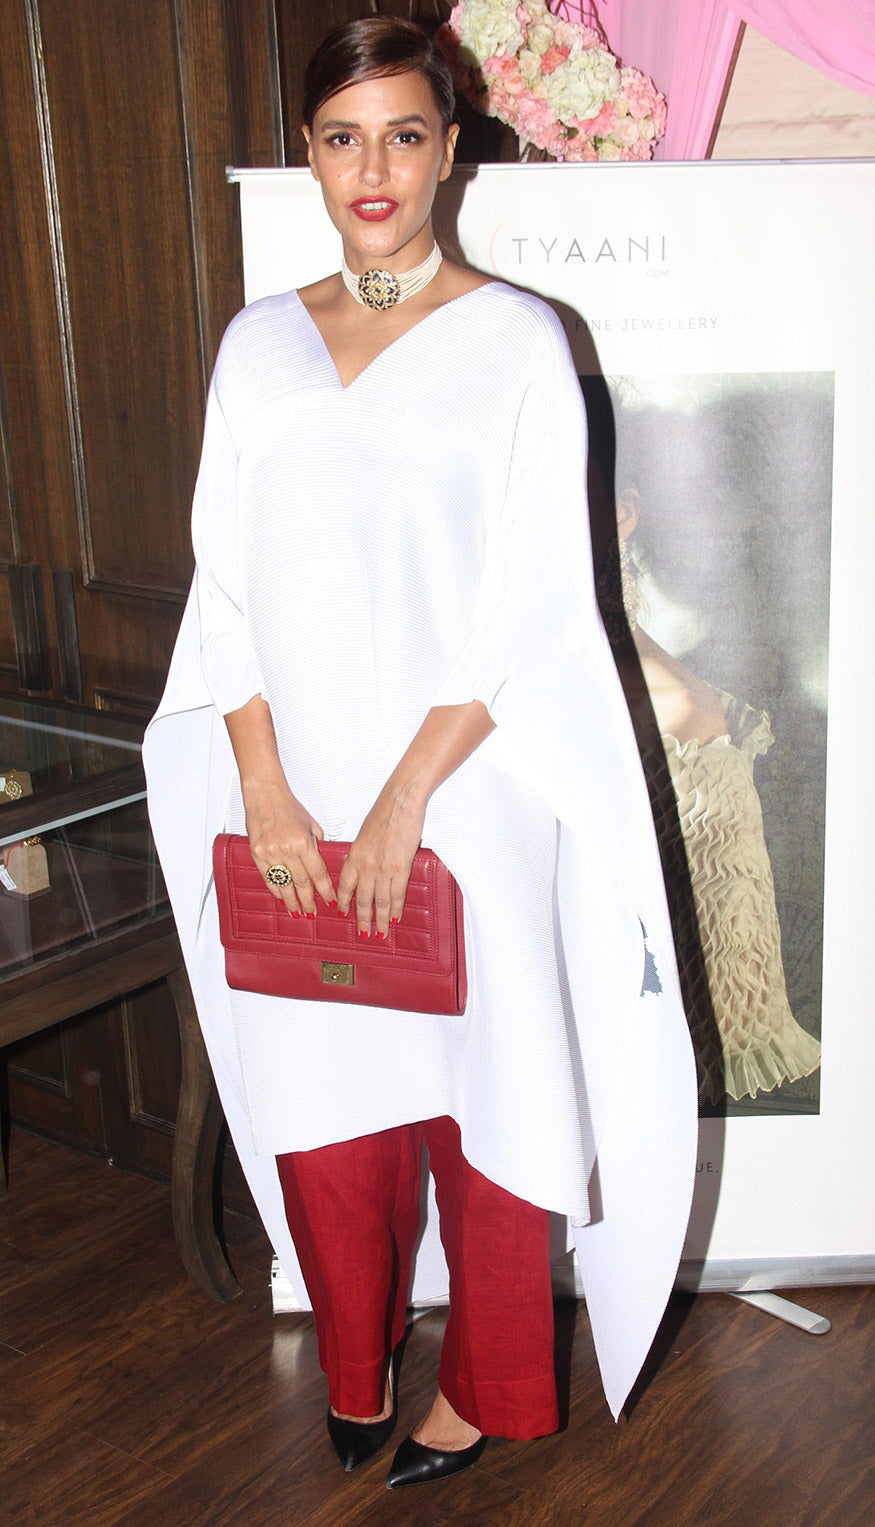 Neha Dhupia Demos How Fashion Girls Are Using This White Cool Fashion's New Trick